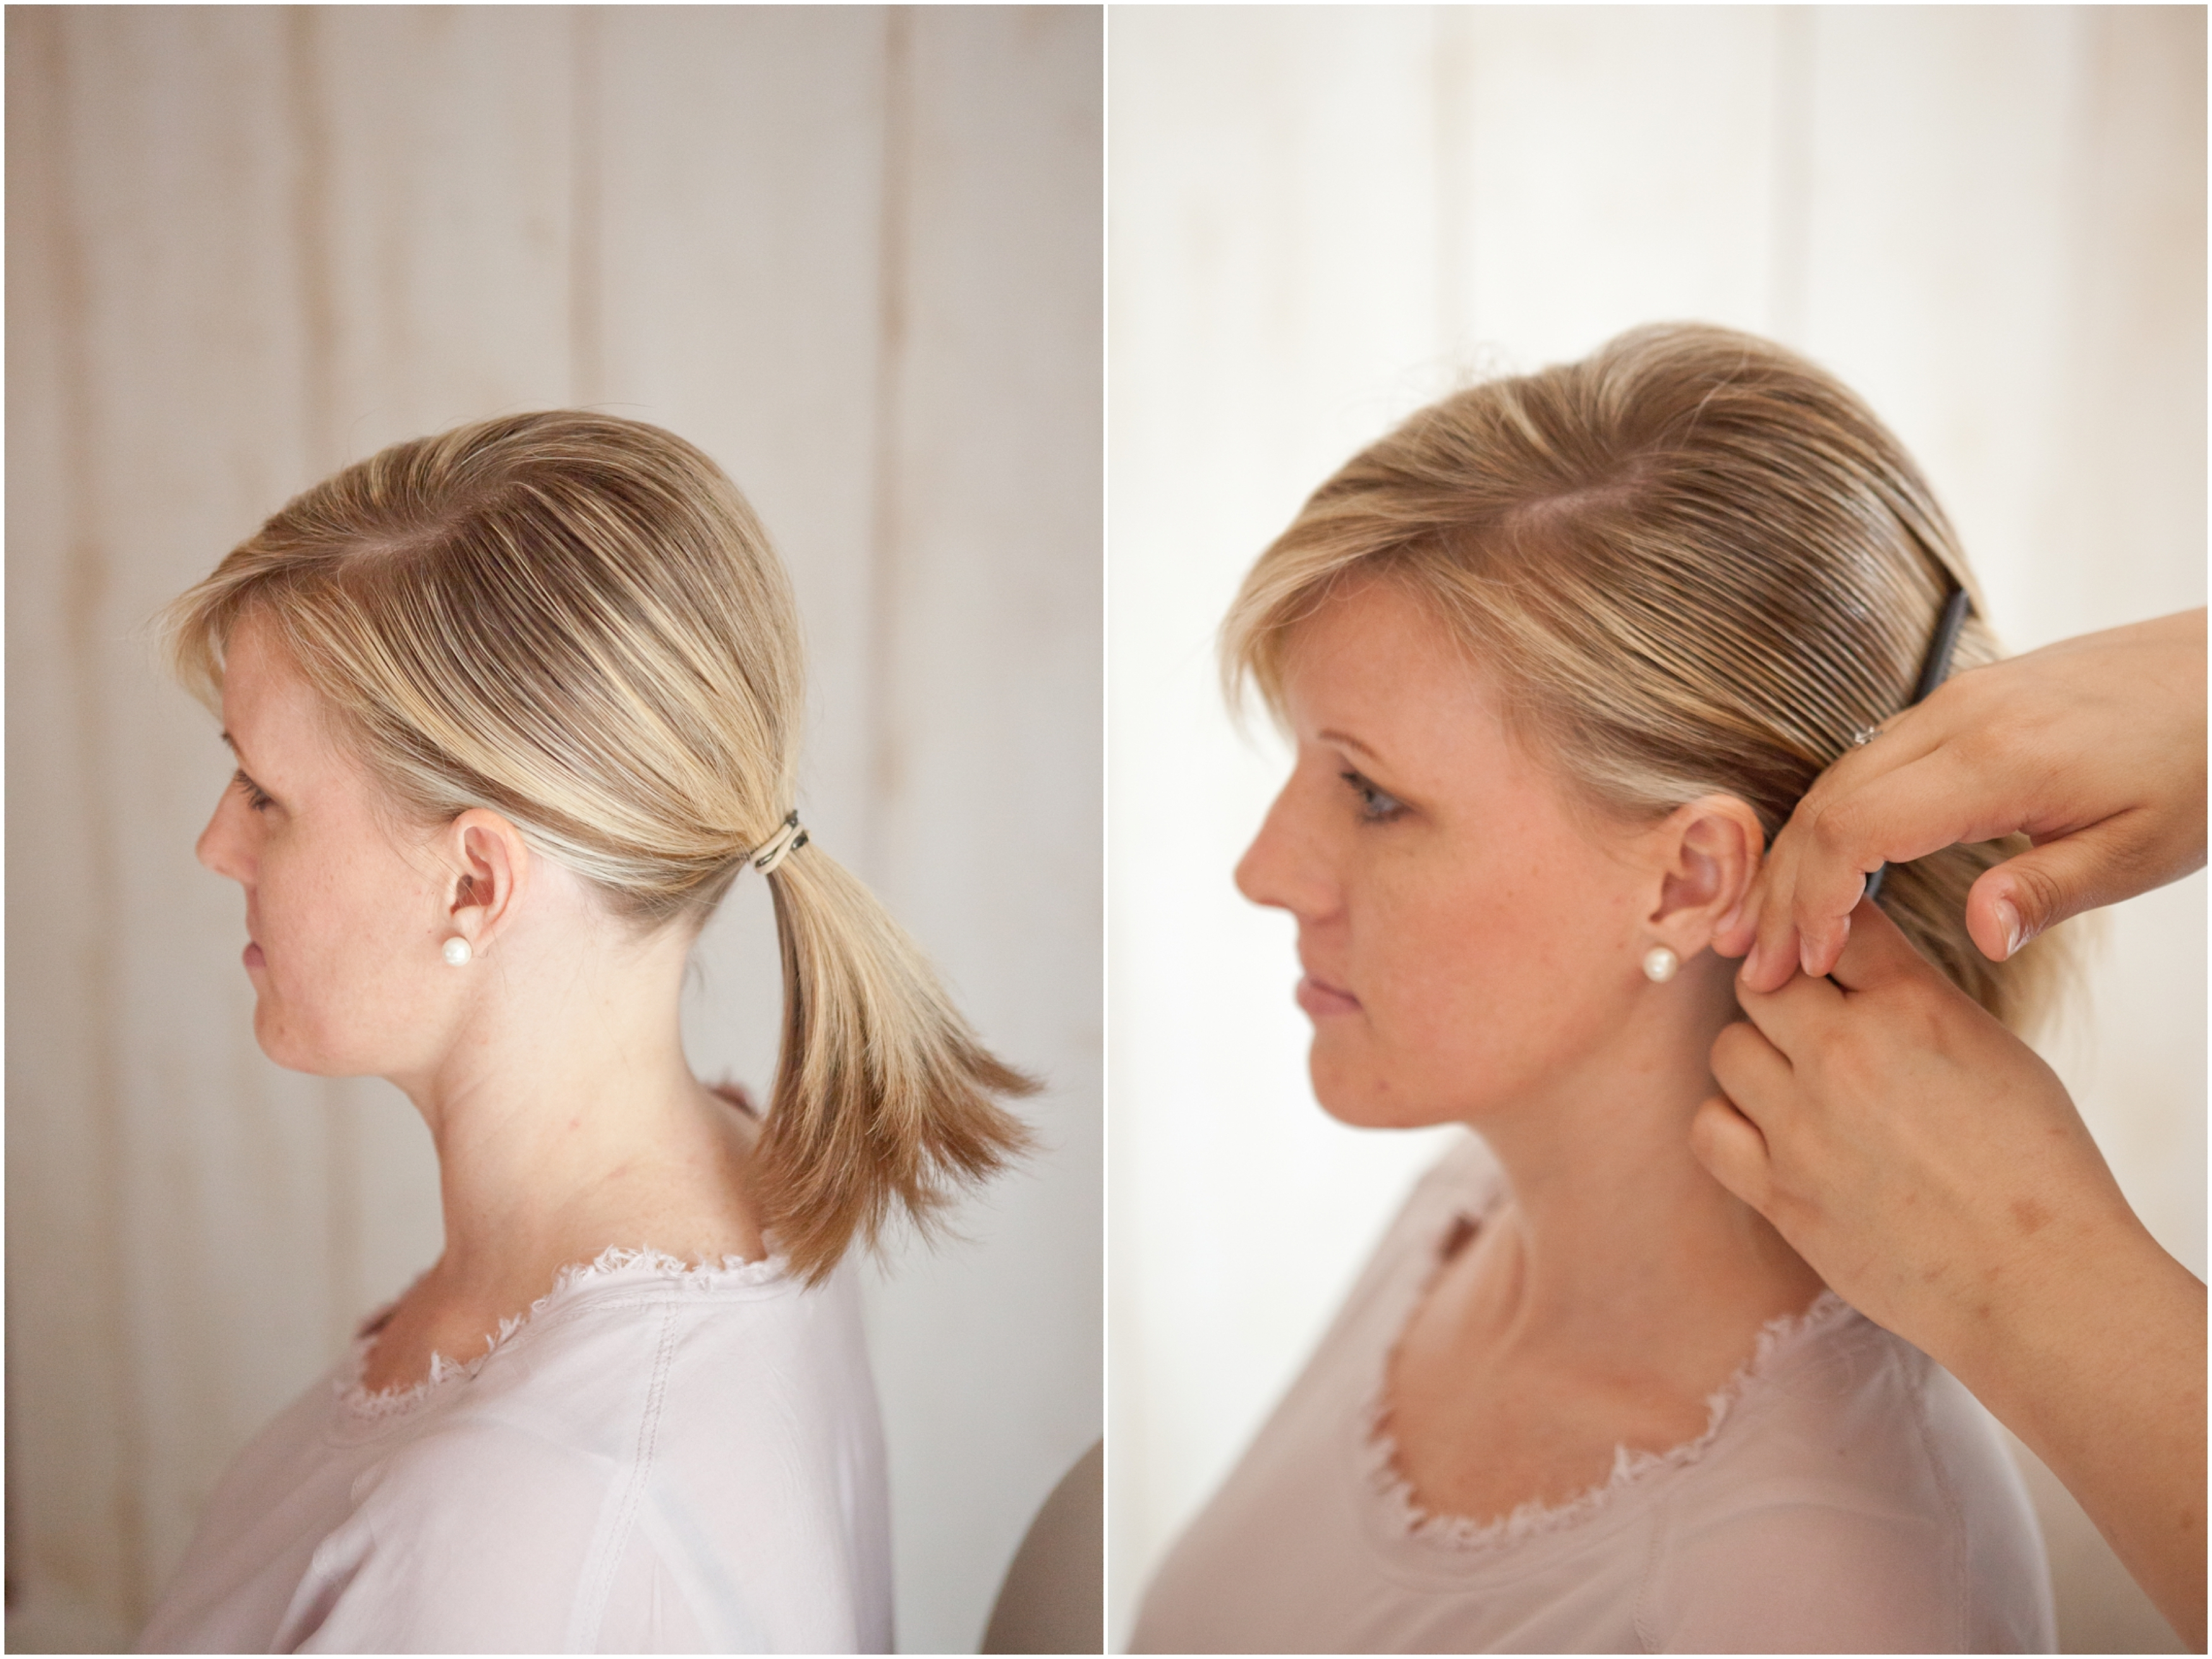 Wedding Hairstyles Low Bun Bangs Diy (View 14 of 15)